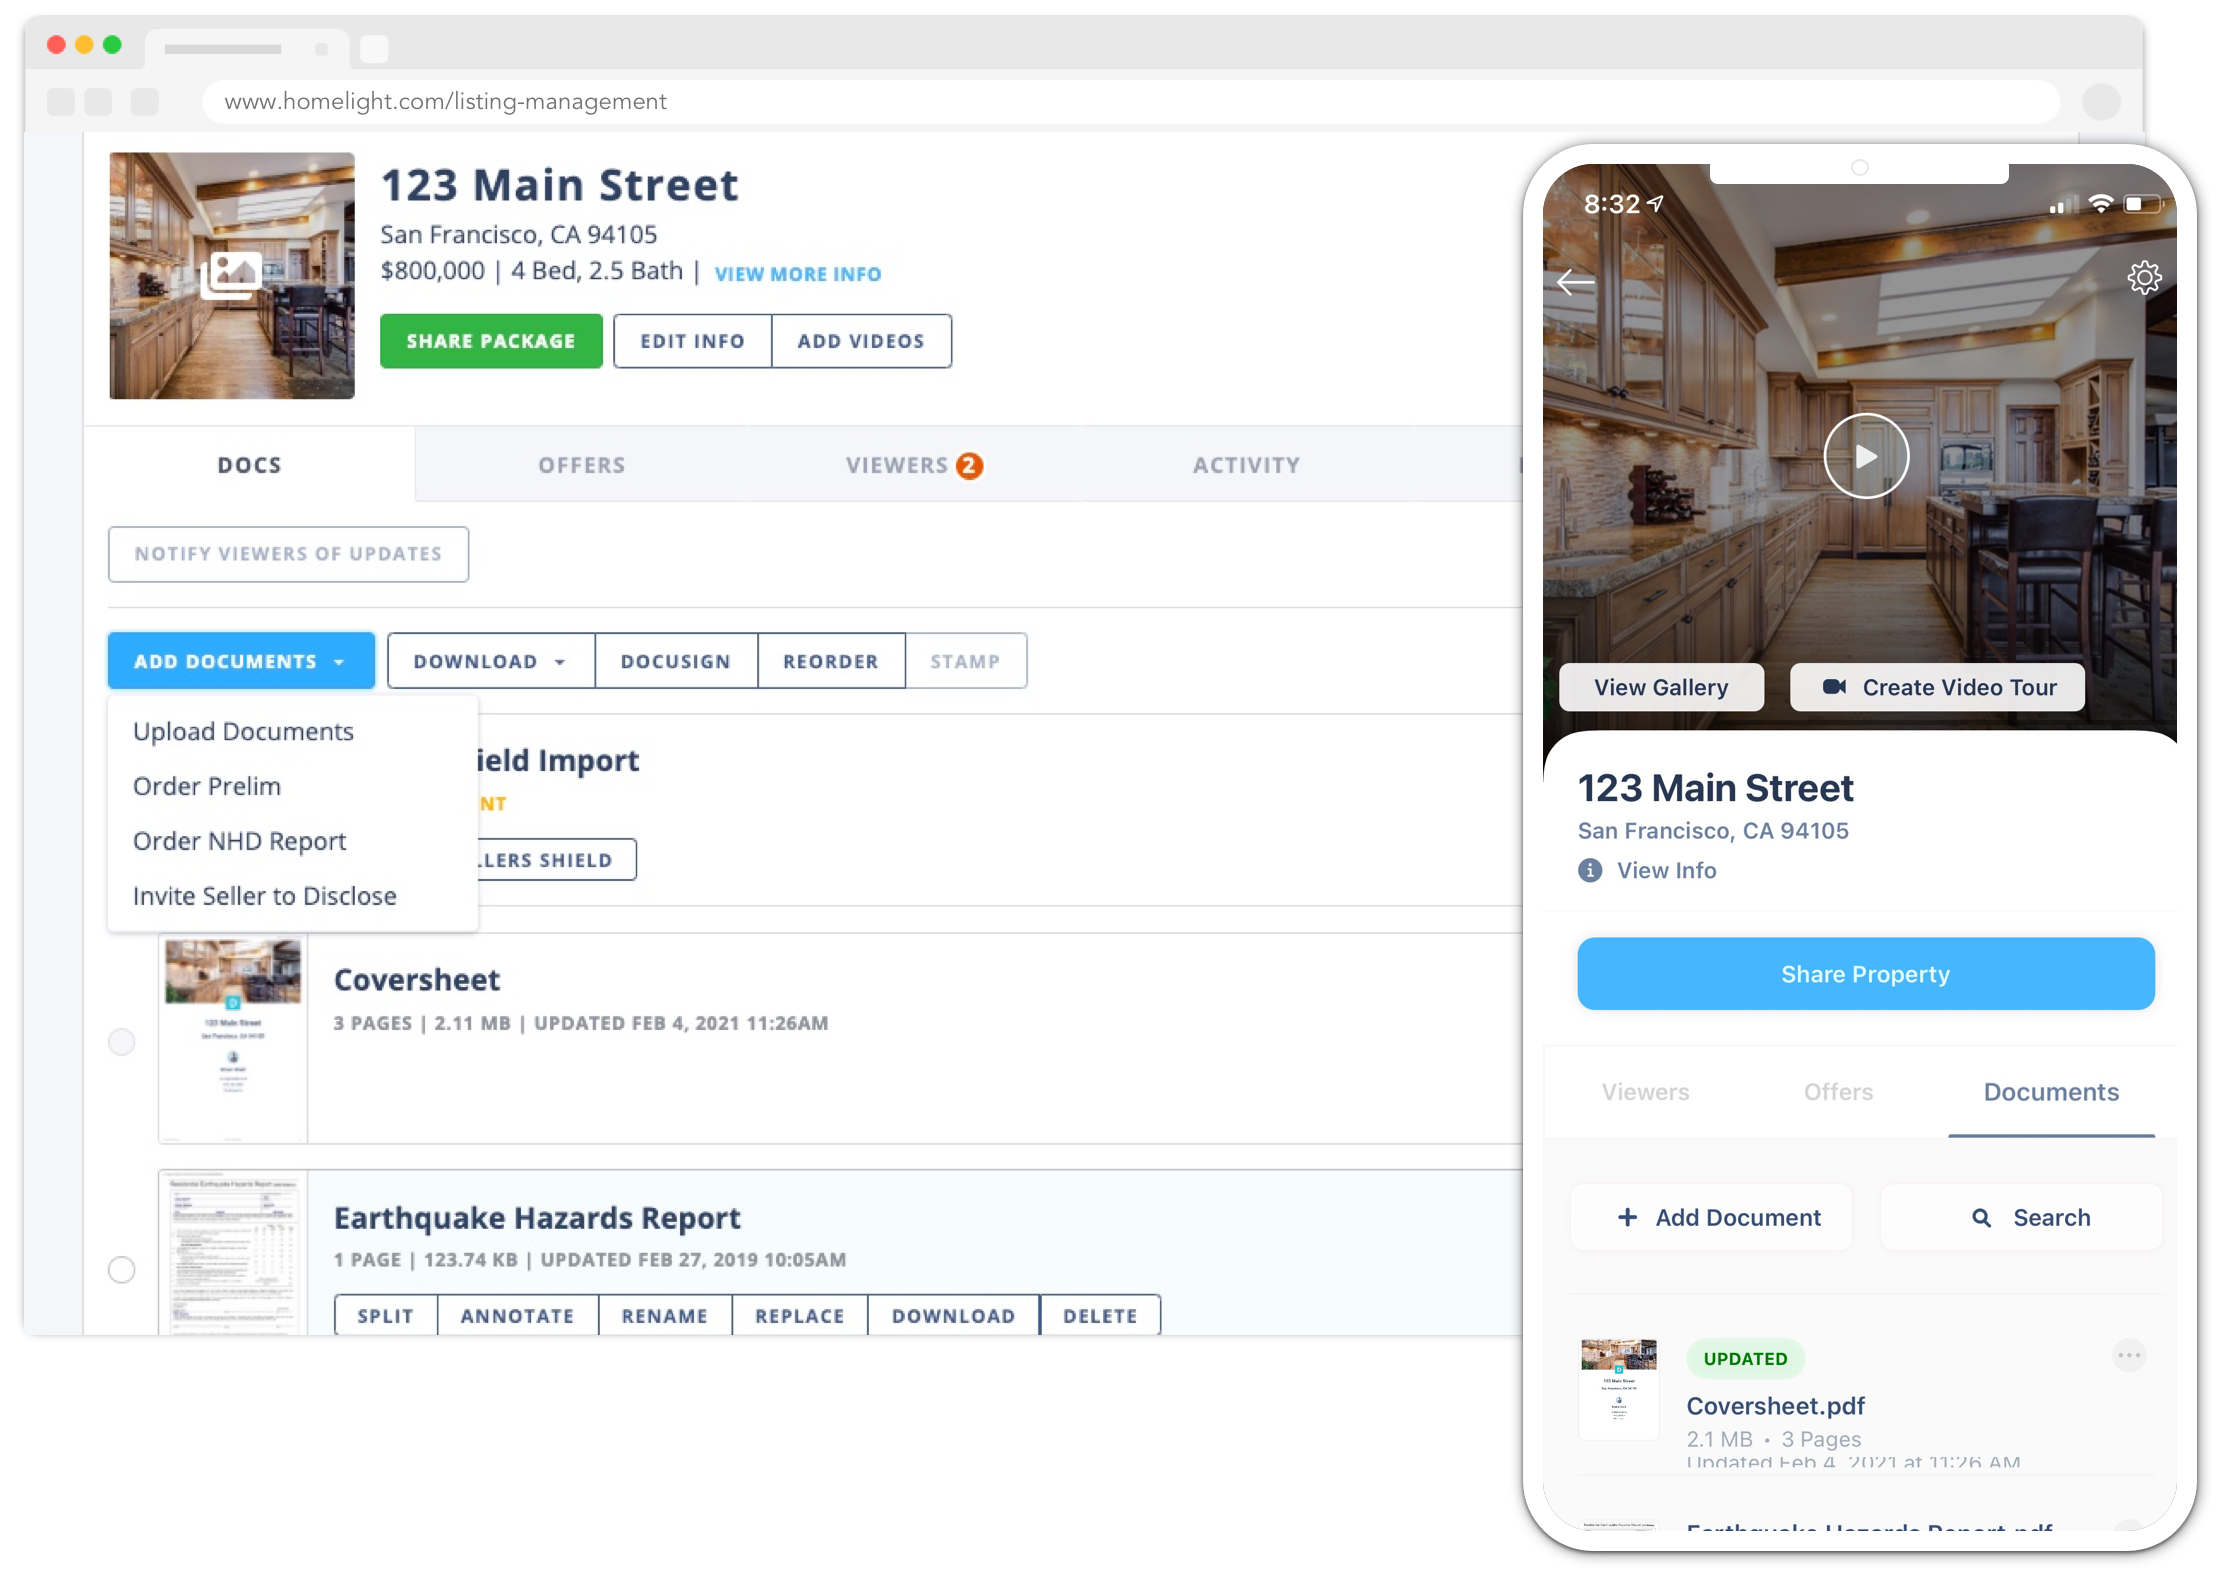 HomeLight Listing Management (HLM)